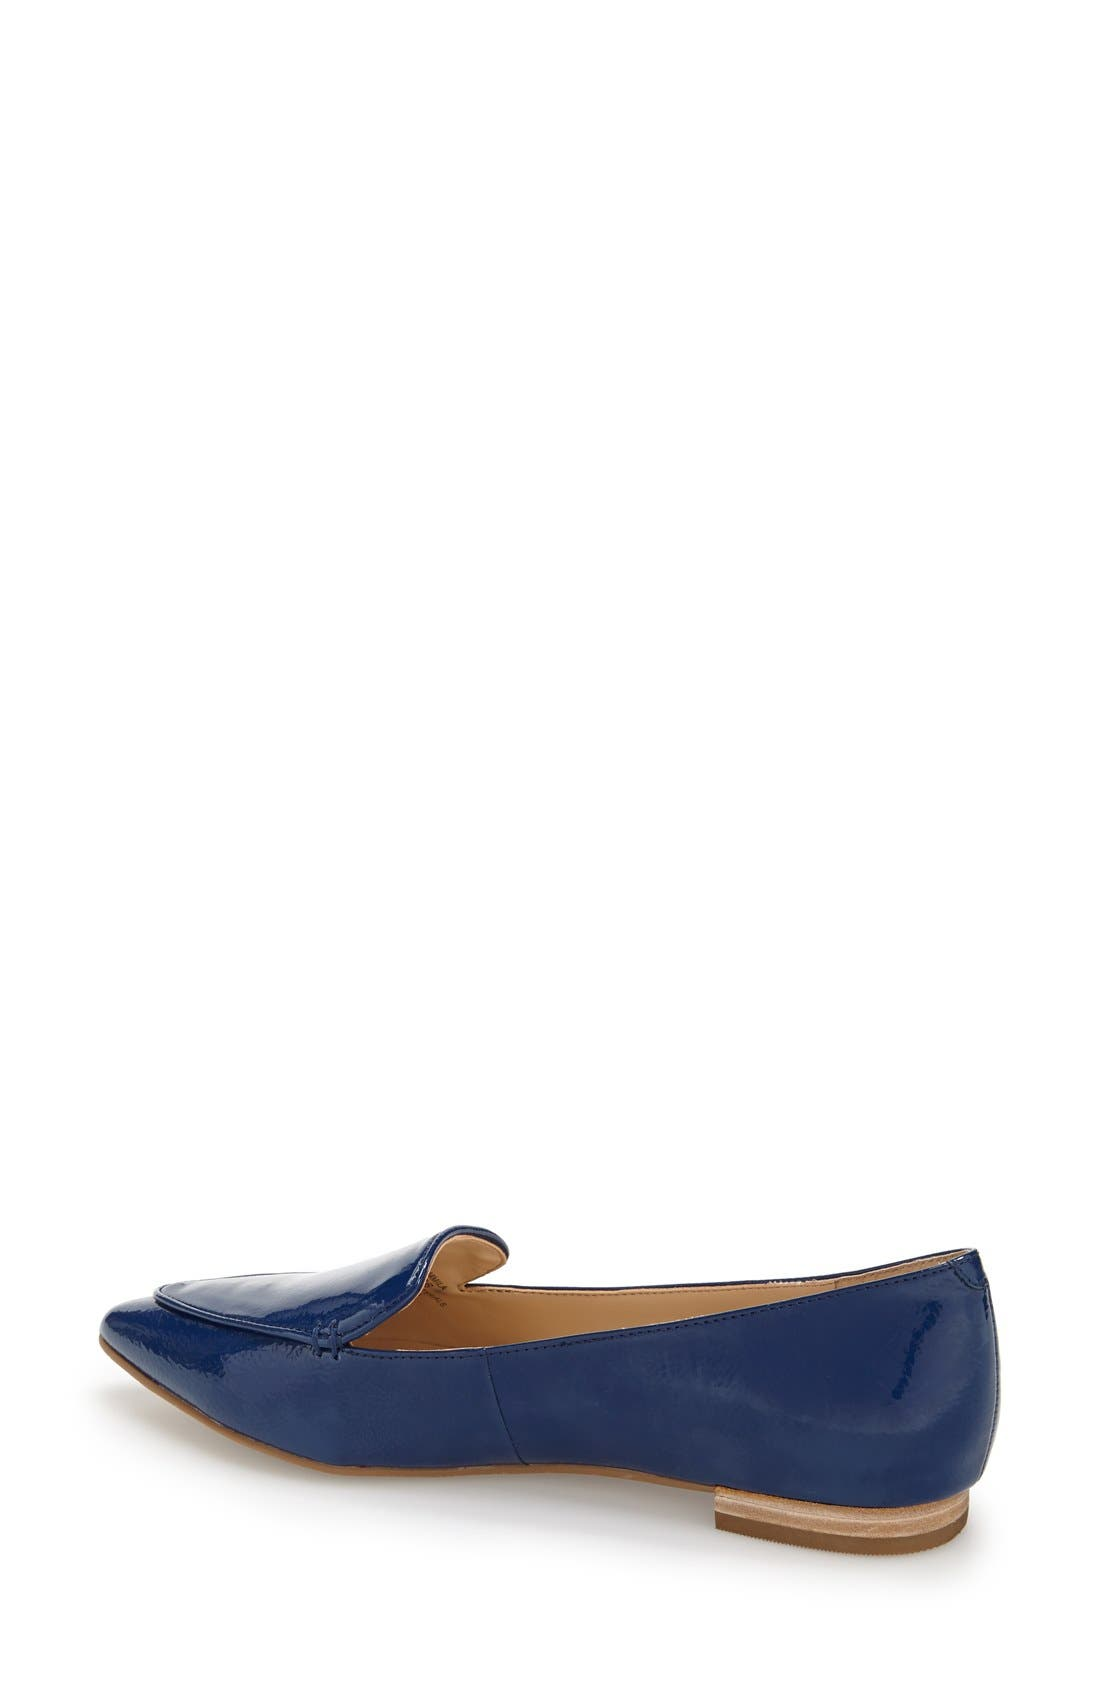 'Cammila' Pointy Toe Loafer,                             Alternate thumbnail 31, color,